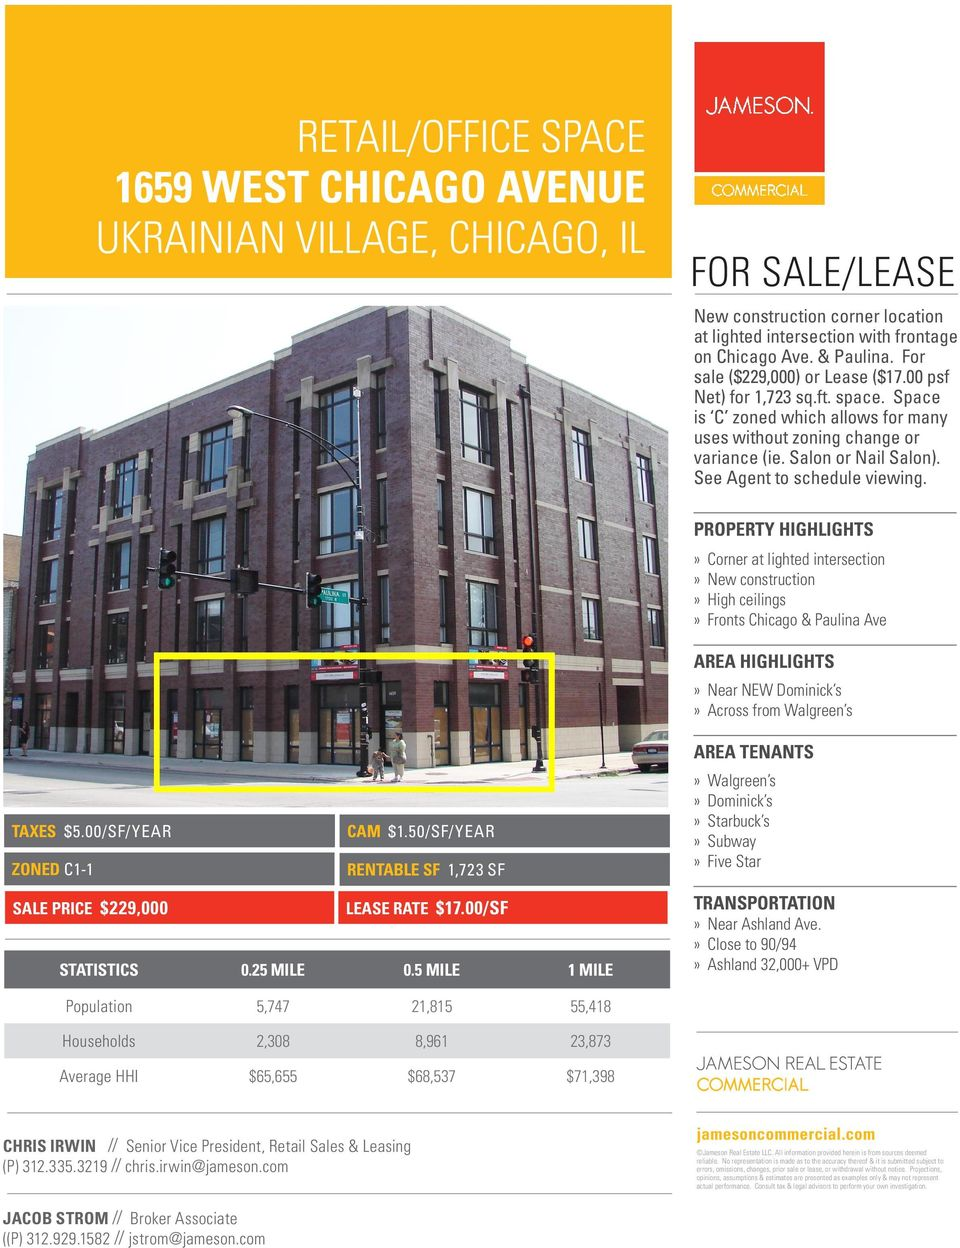 PROPERTY HIGHLIGHTS» Corner at lighted intersection» New construction» High ceilings» Fronts Chicago & Paulina Ave AREA HIGHLIGHTS» Near NEW Dominick s» Across from Walgreen s TAXES 6.00/SF/YEAR $5.